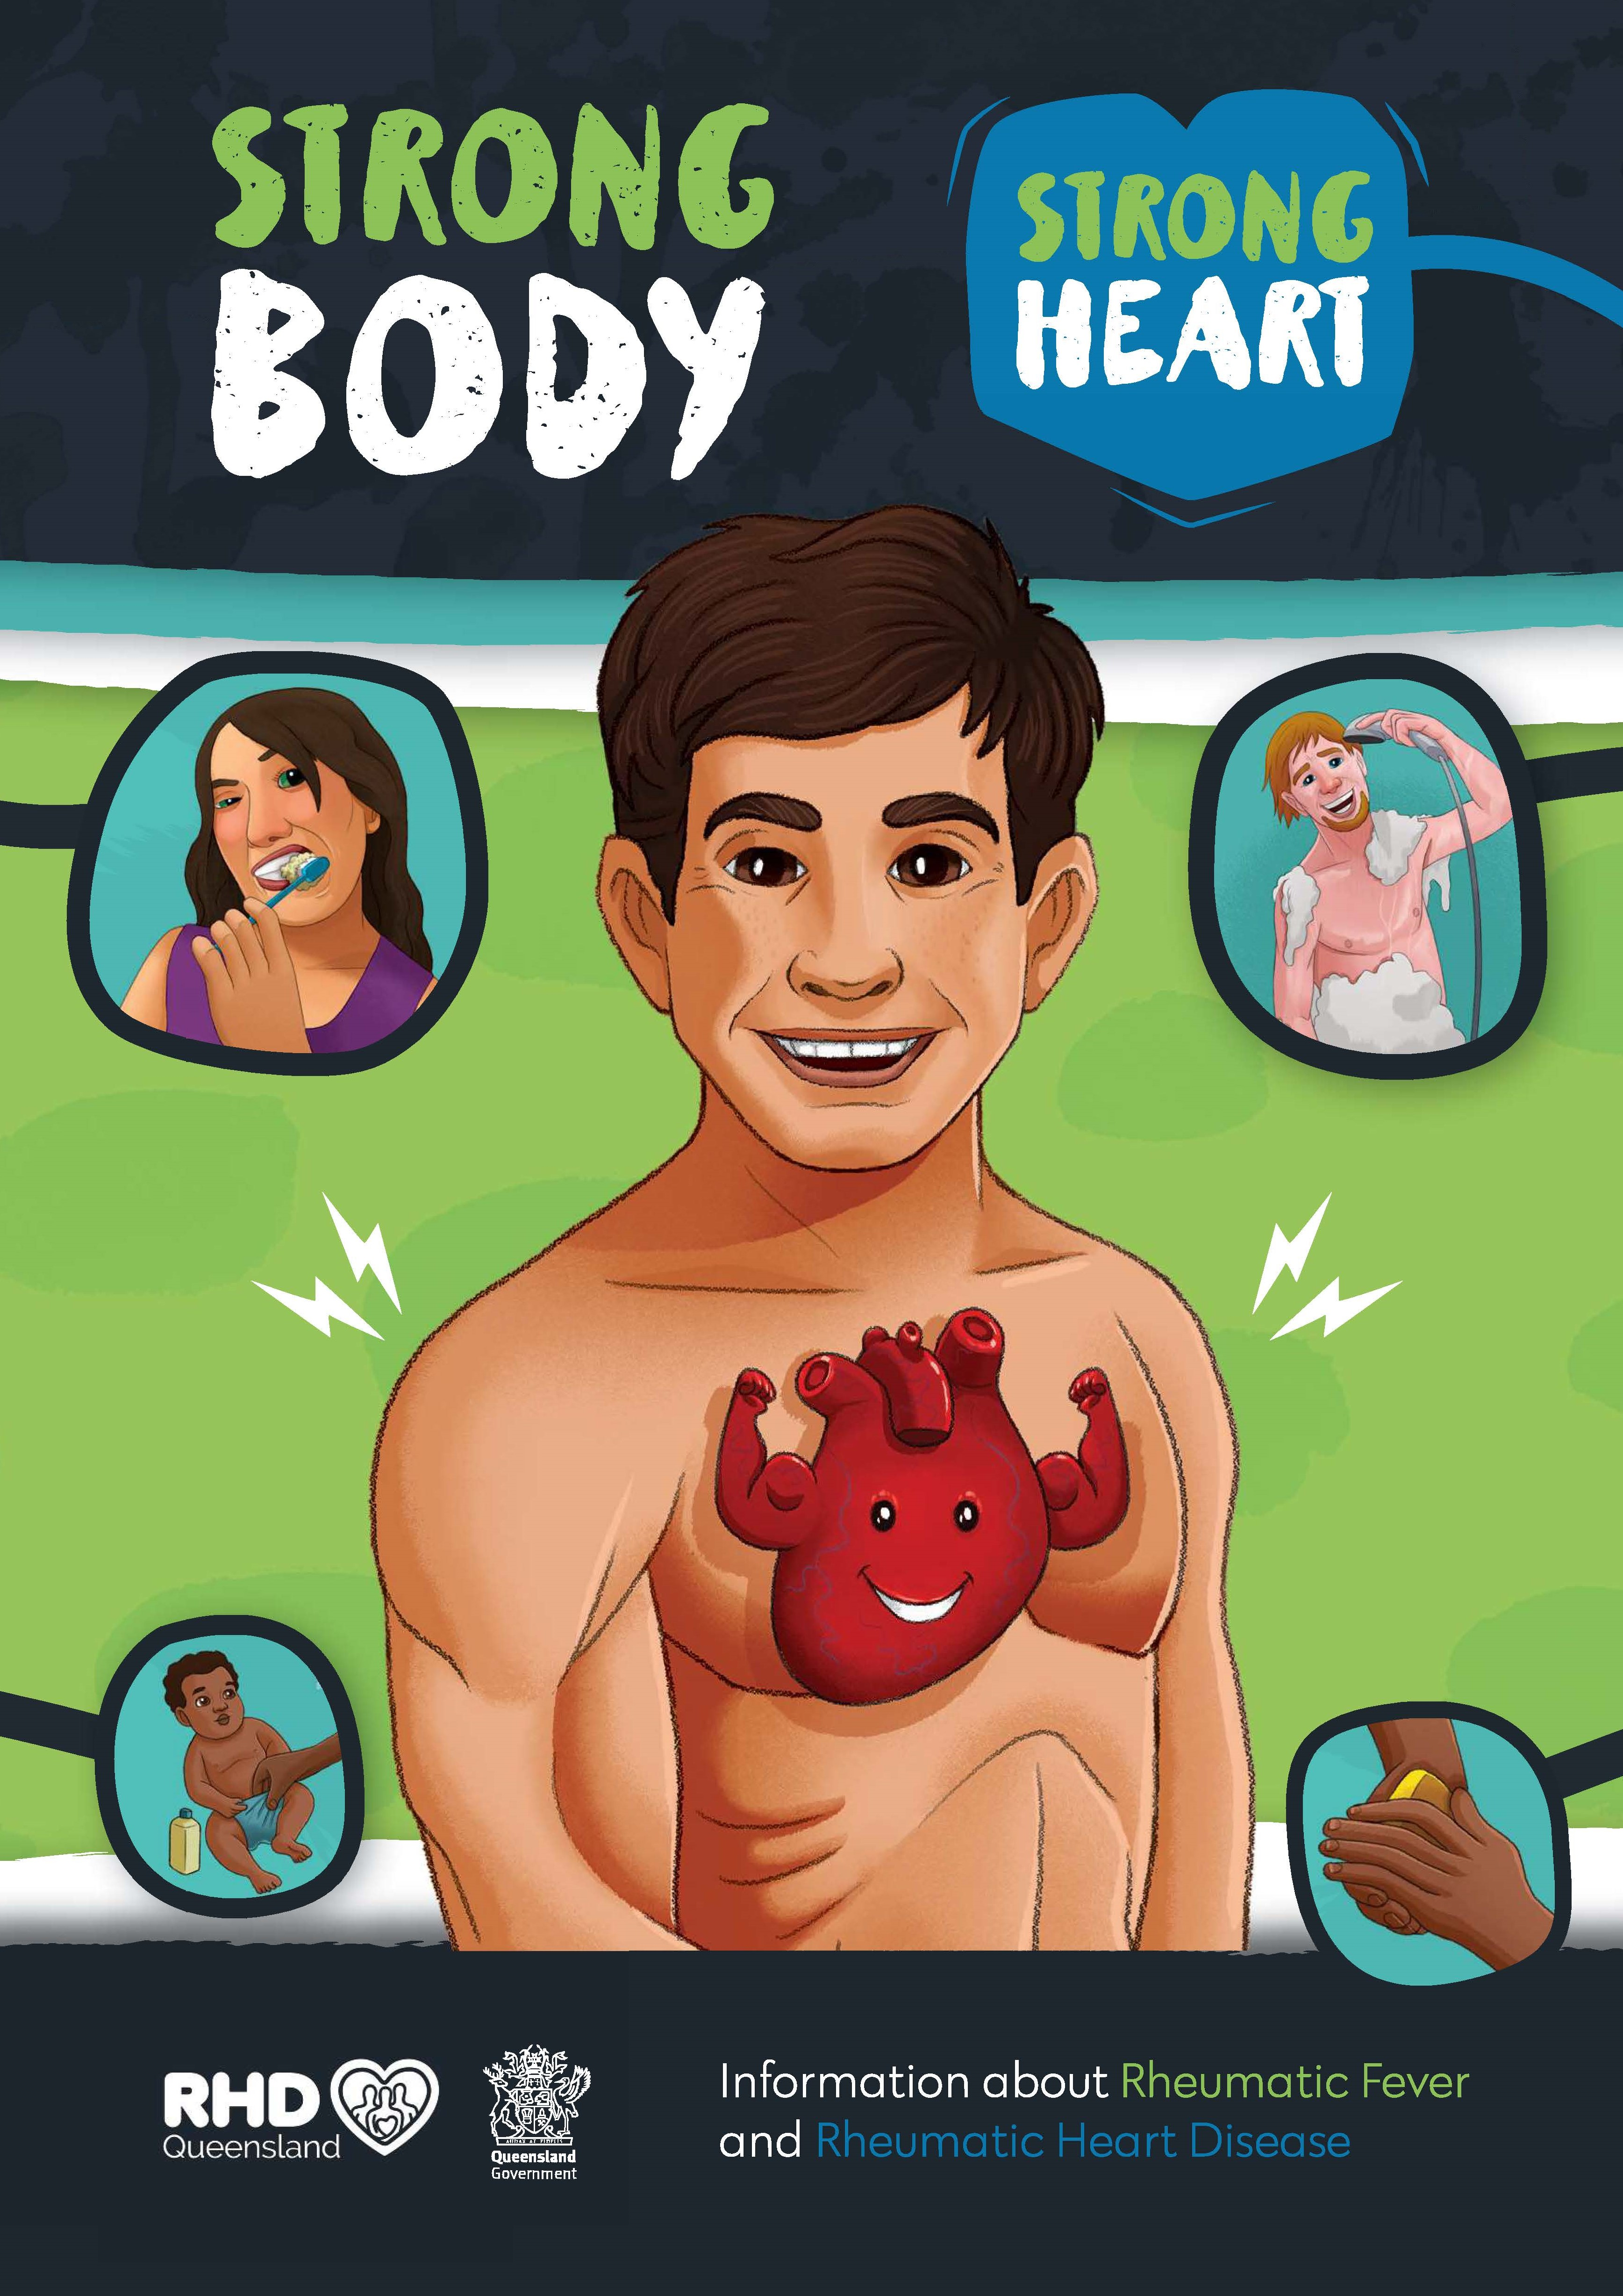 This booklet presented in English, contains information about the signs and symptoms of acute rheumatic fever and rheumatic heart disease, how to manage them, and how to prevent complications.